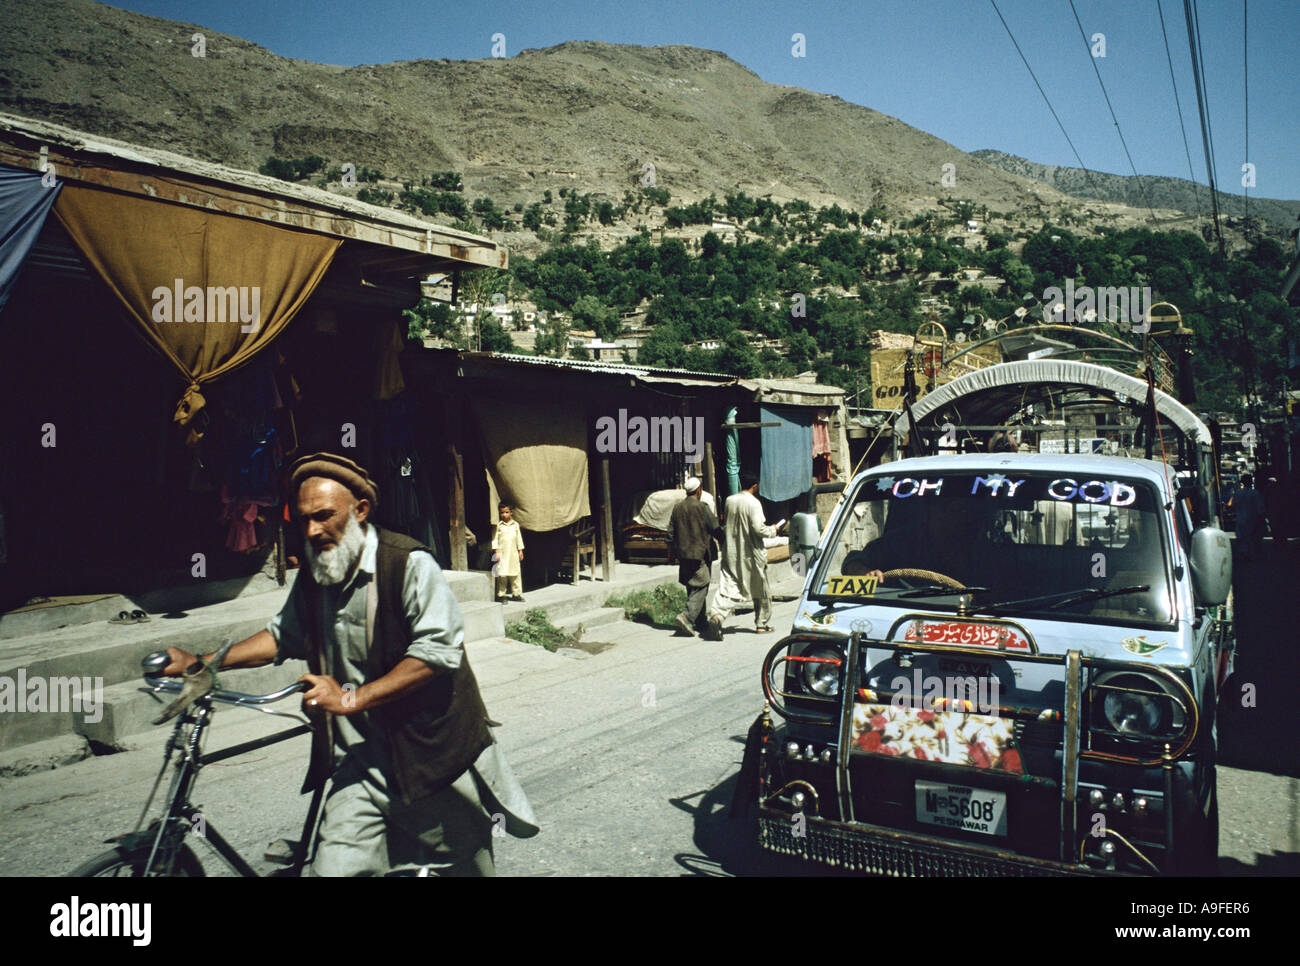 Old man with beard pushes bicycle small transporter bus with words Oh My God on windscreen Chitral North West Frontier pakistan - Stock Image